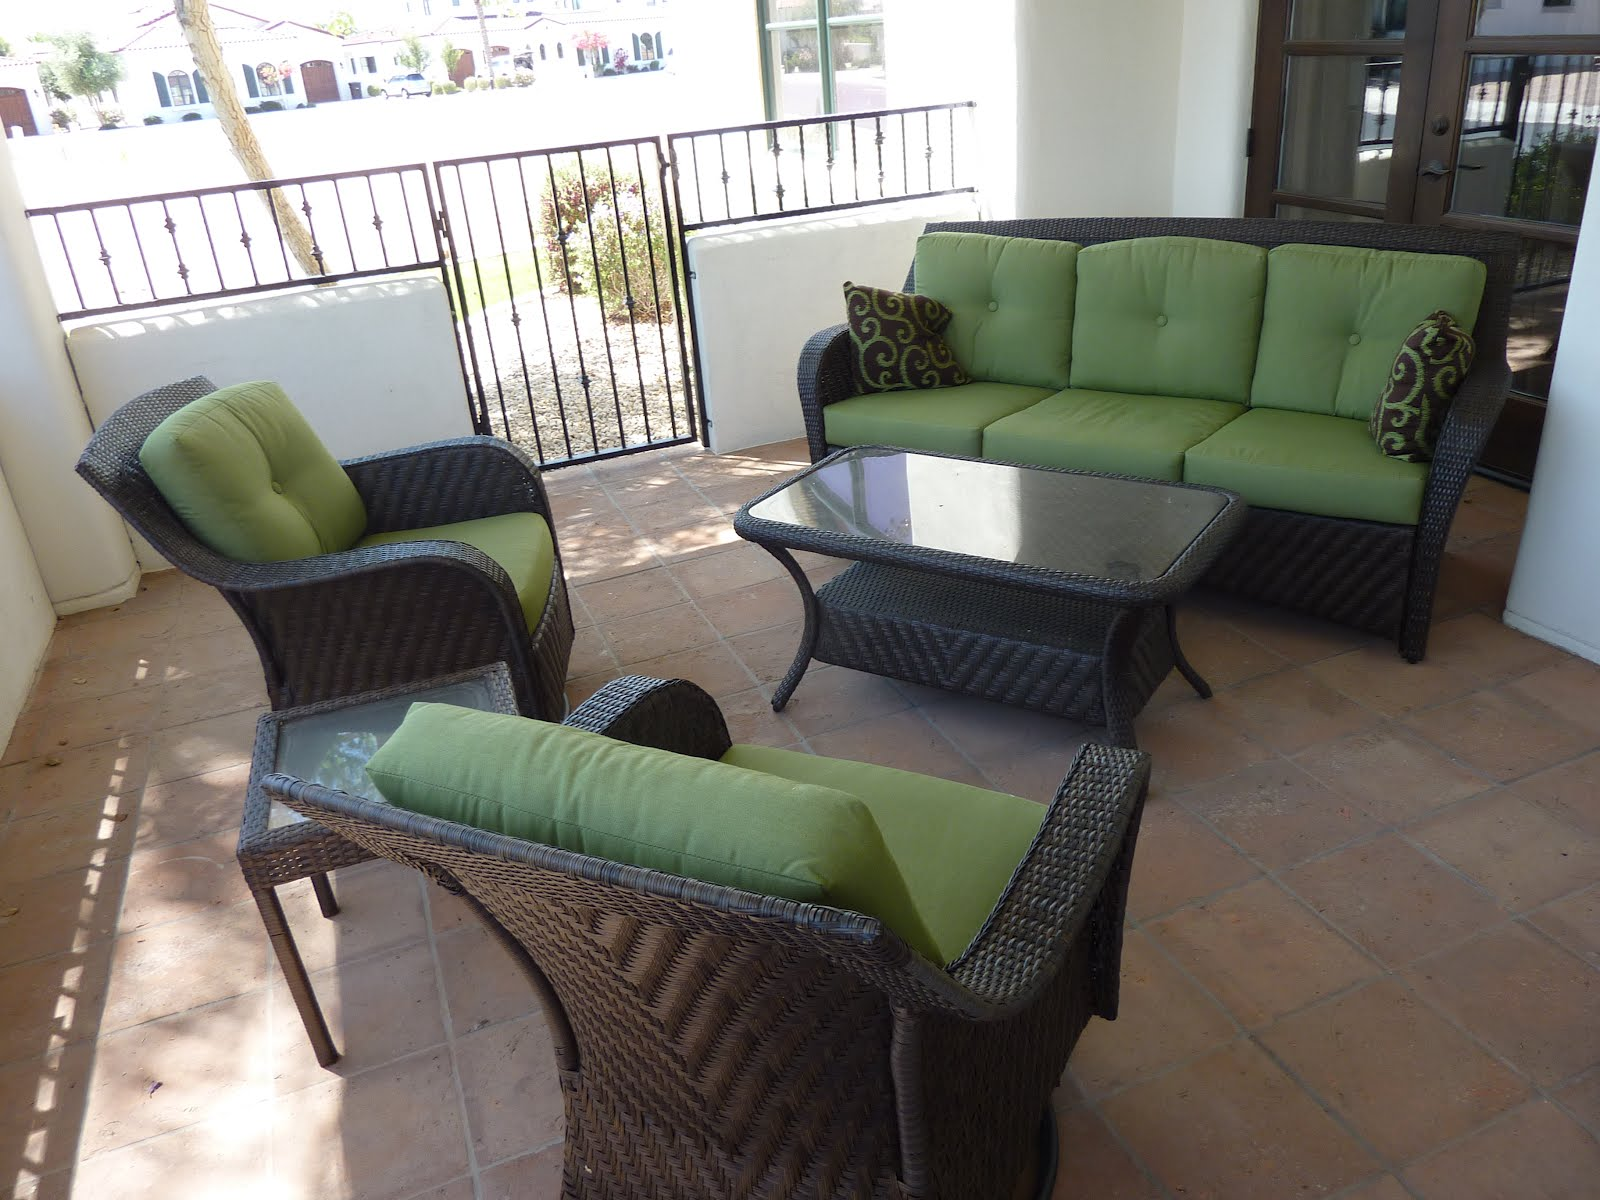 GREAT PATIO IDEAS: NICE WICKER PATIO FURNITURE DOESN'T HAVE